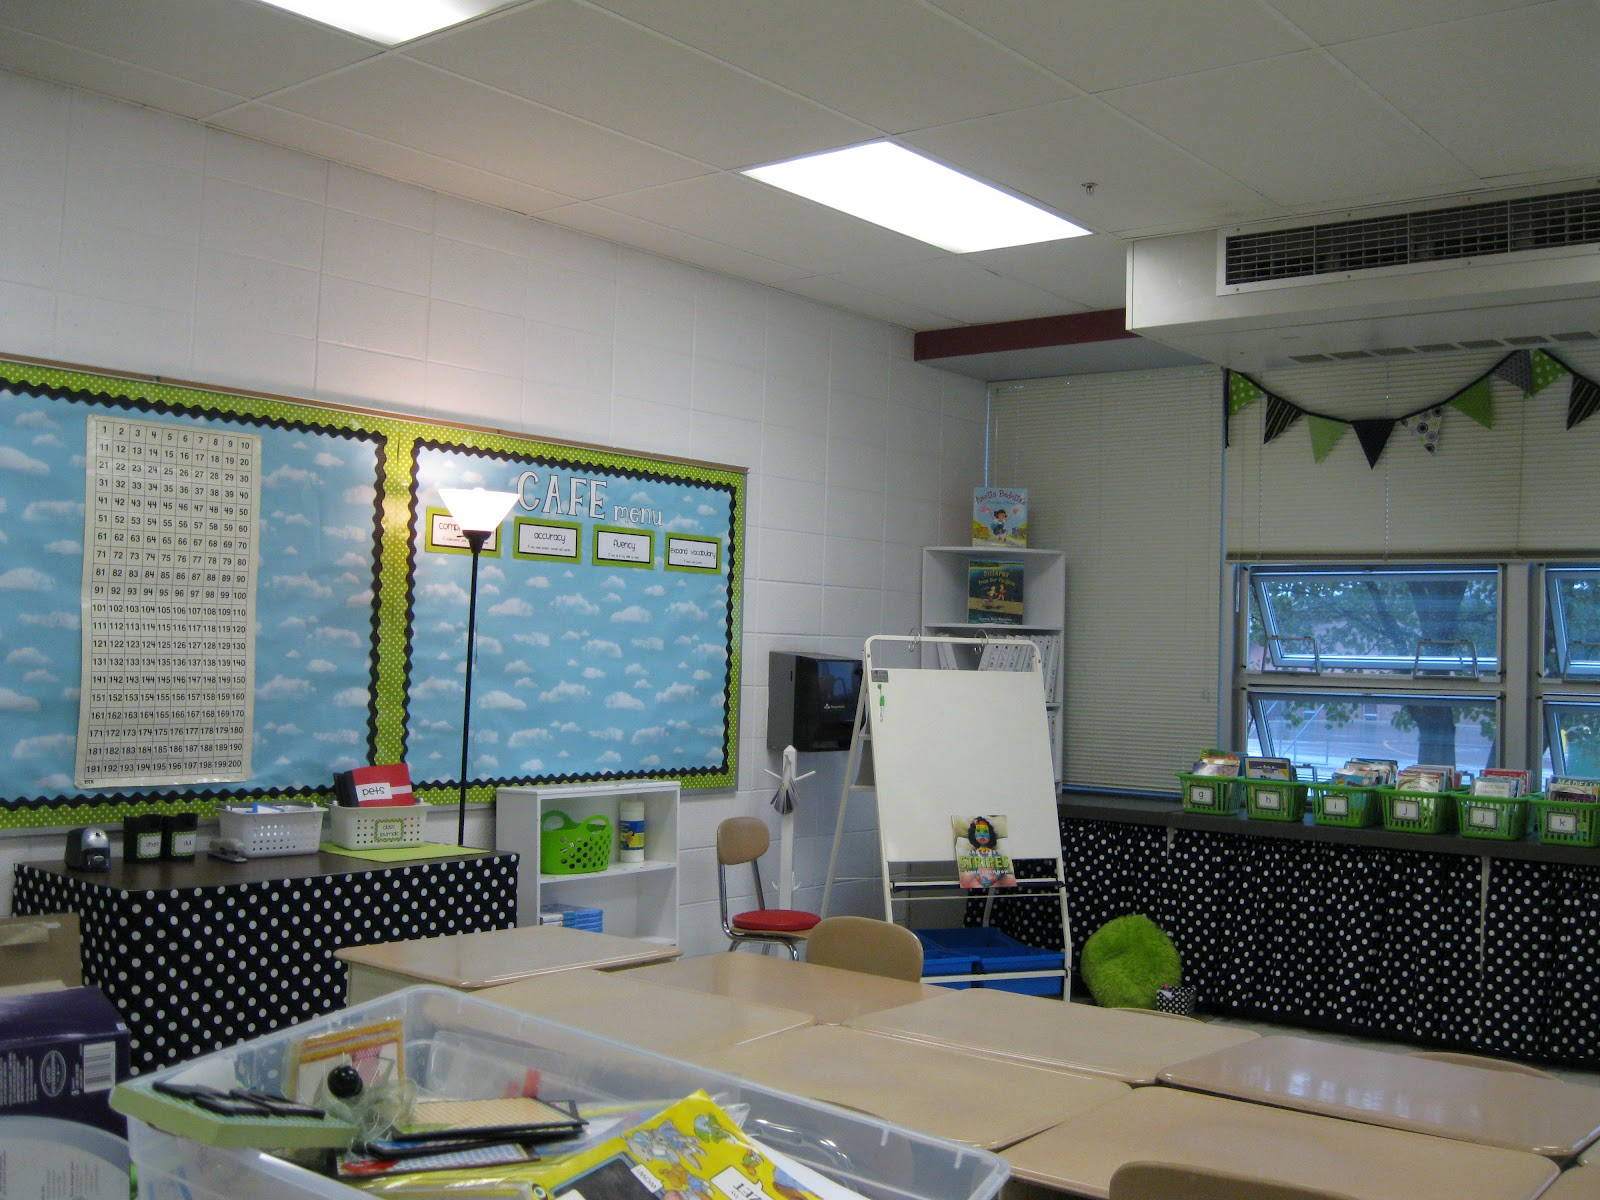 Unique Classroom Design ~ Creative happenings monday made it classroom design